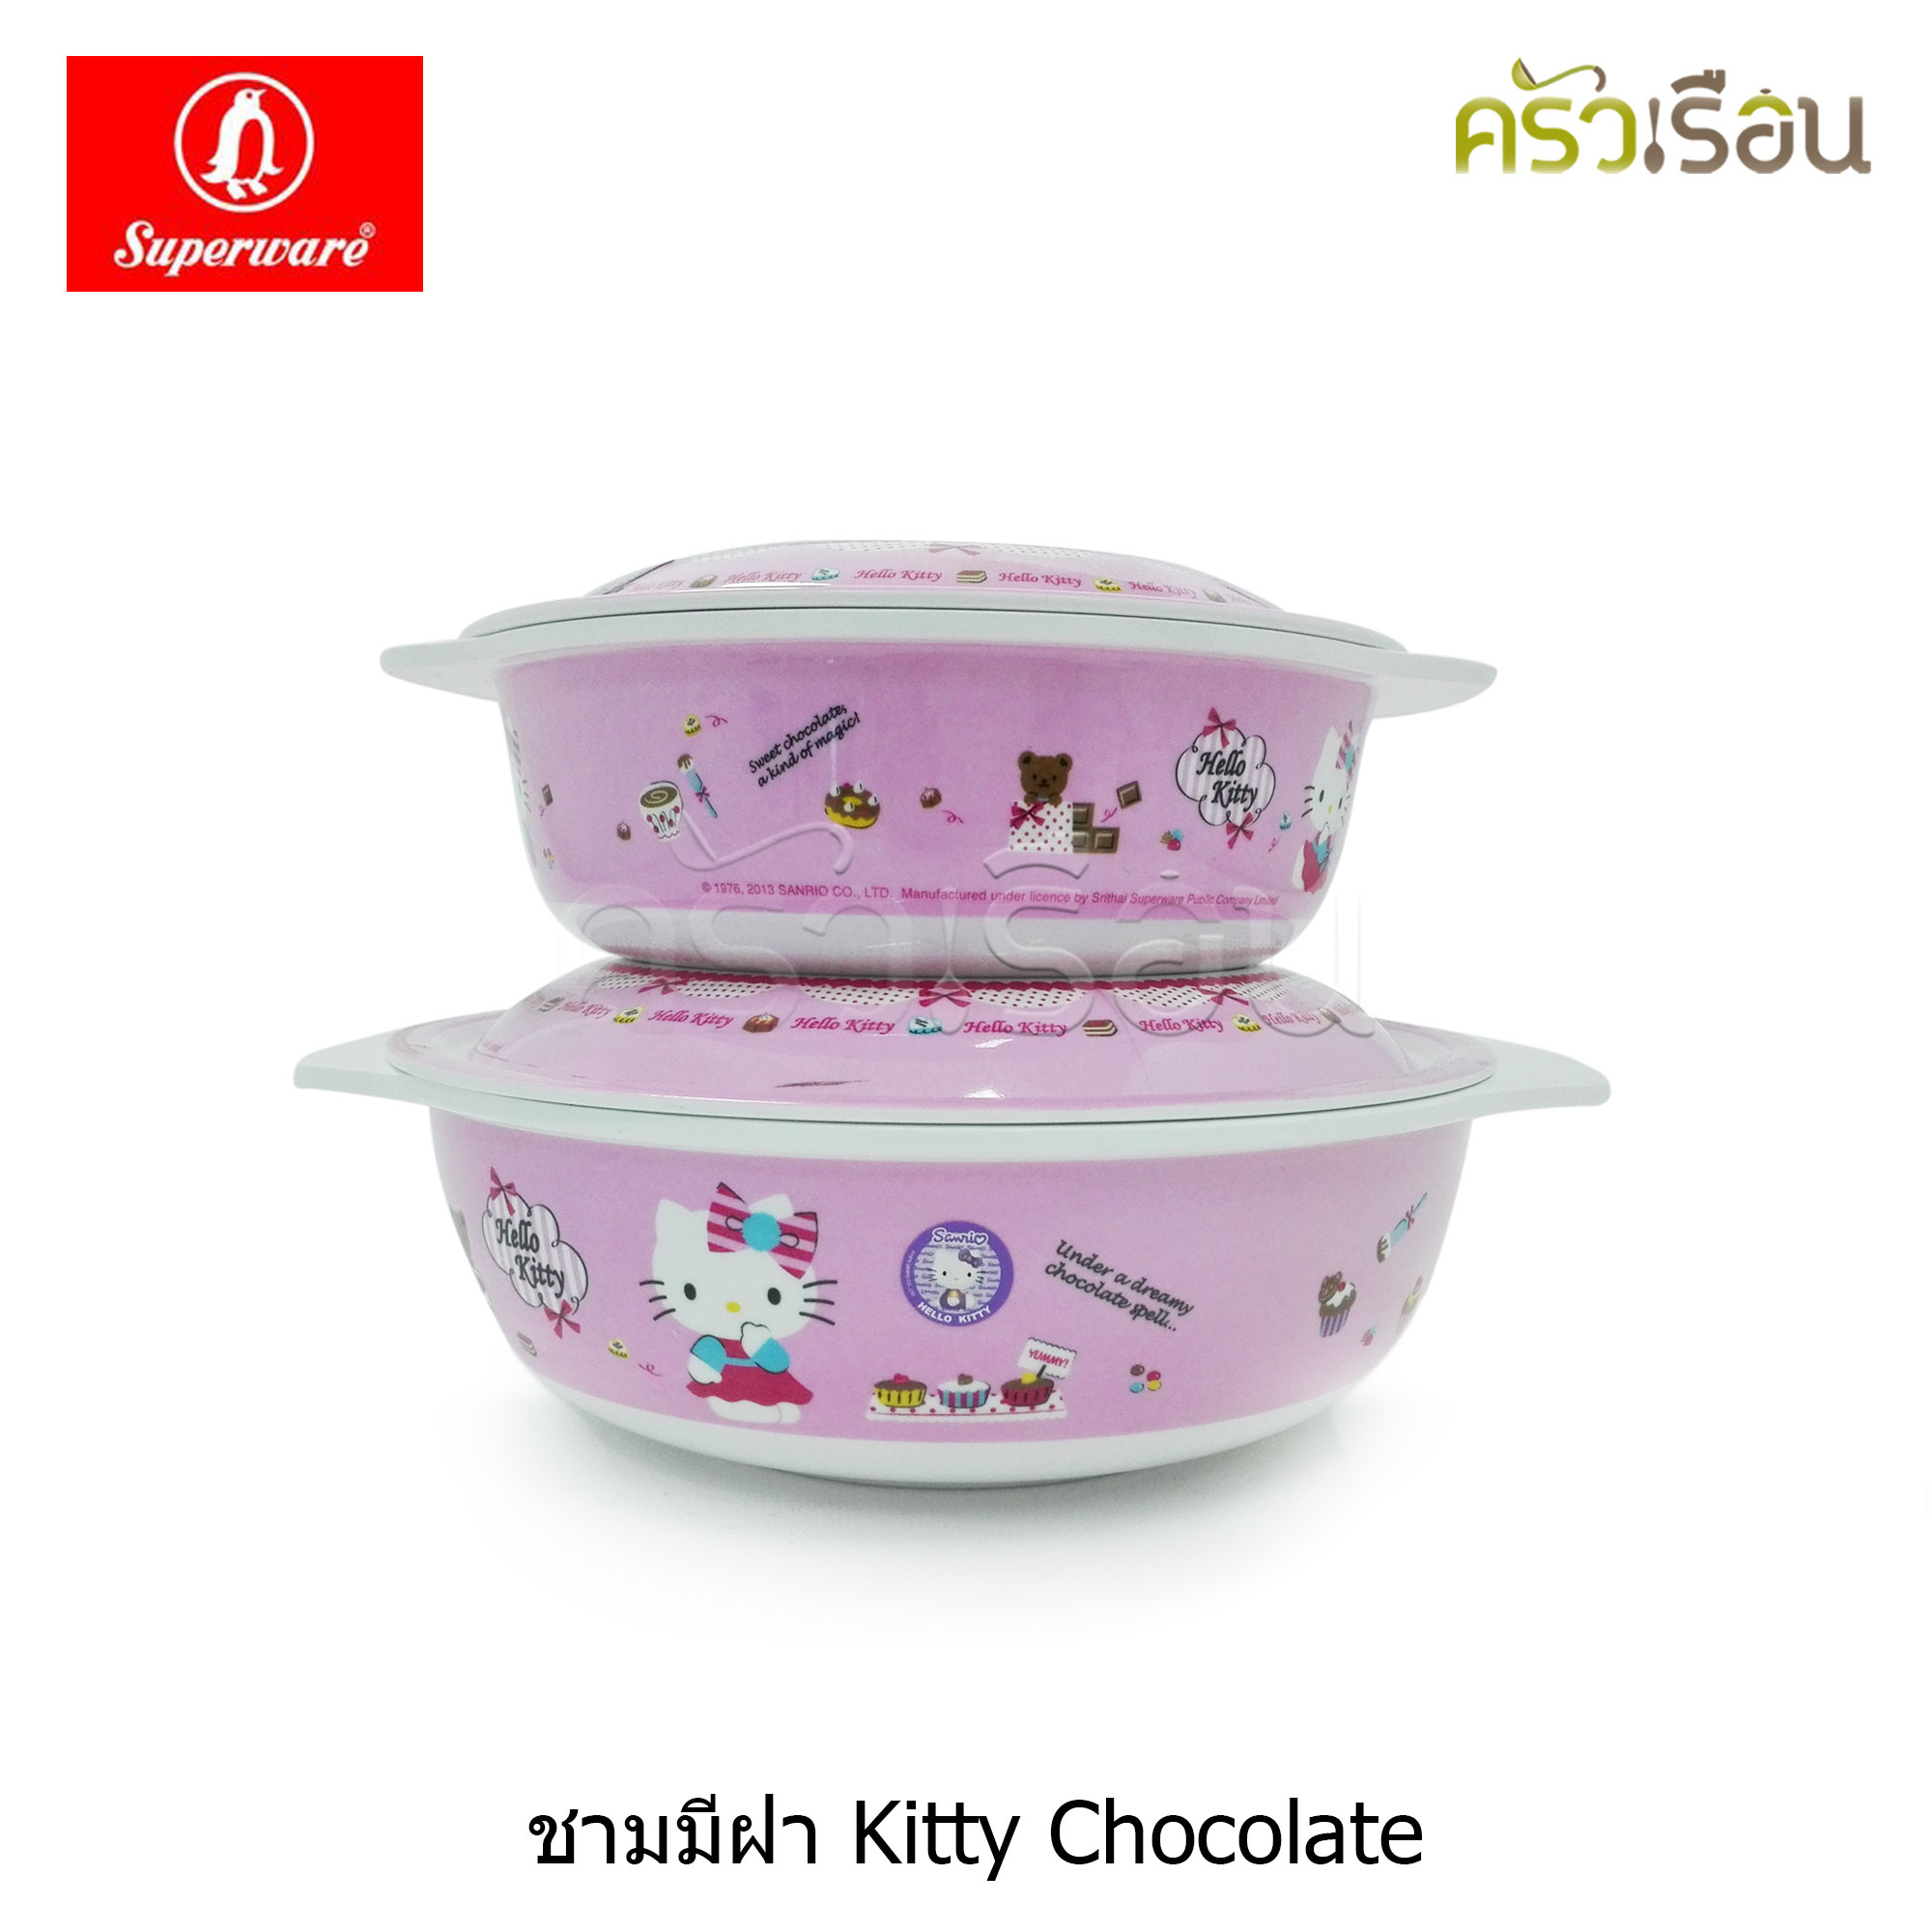 Superware ชามมีฝา Kitty Chocolate